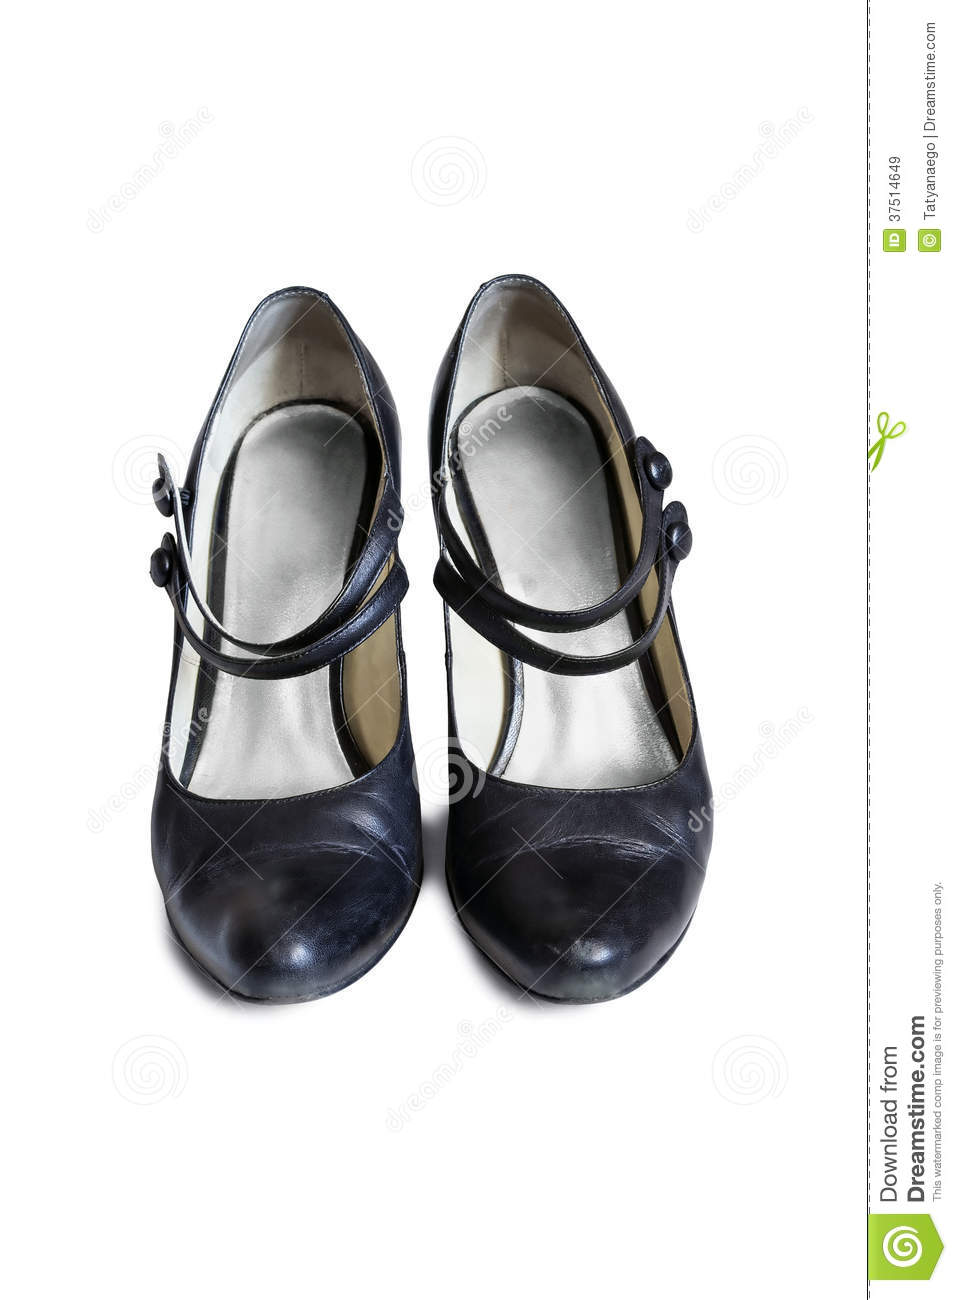 f10cae9226a5 Leather black Mary Jane shoes on white background